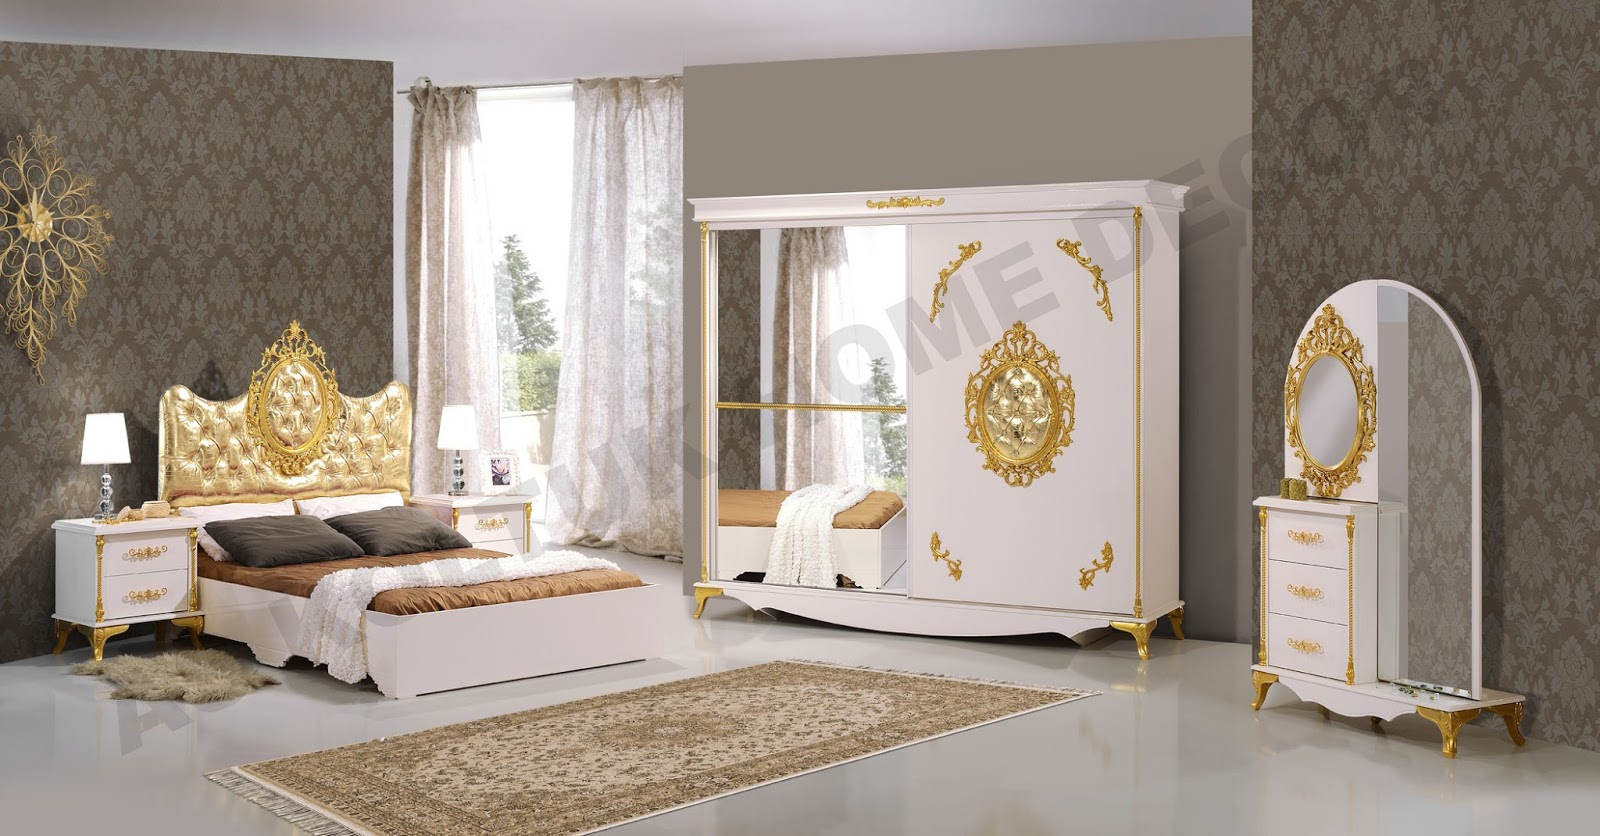 As Koltuk Home Decor For Sale White And Gold Classic Bedroom Set